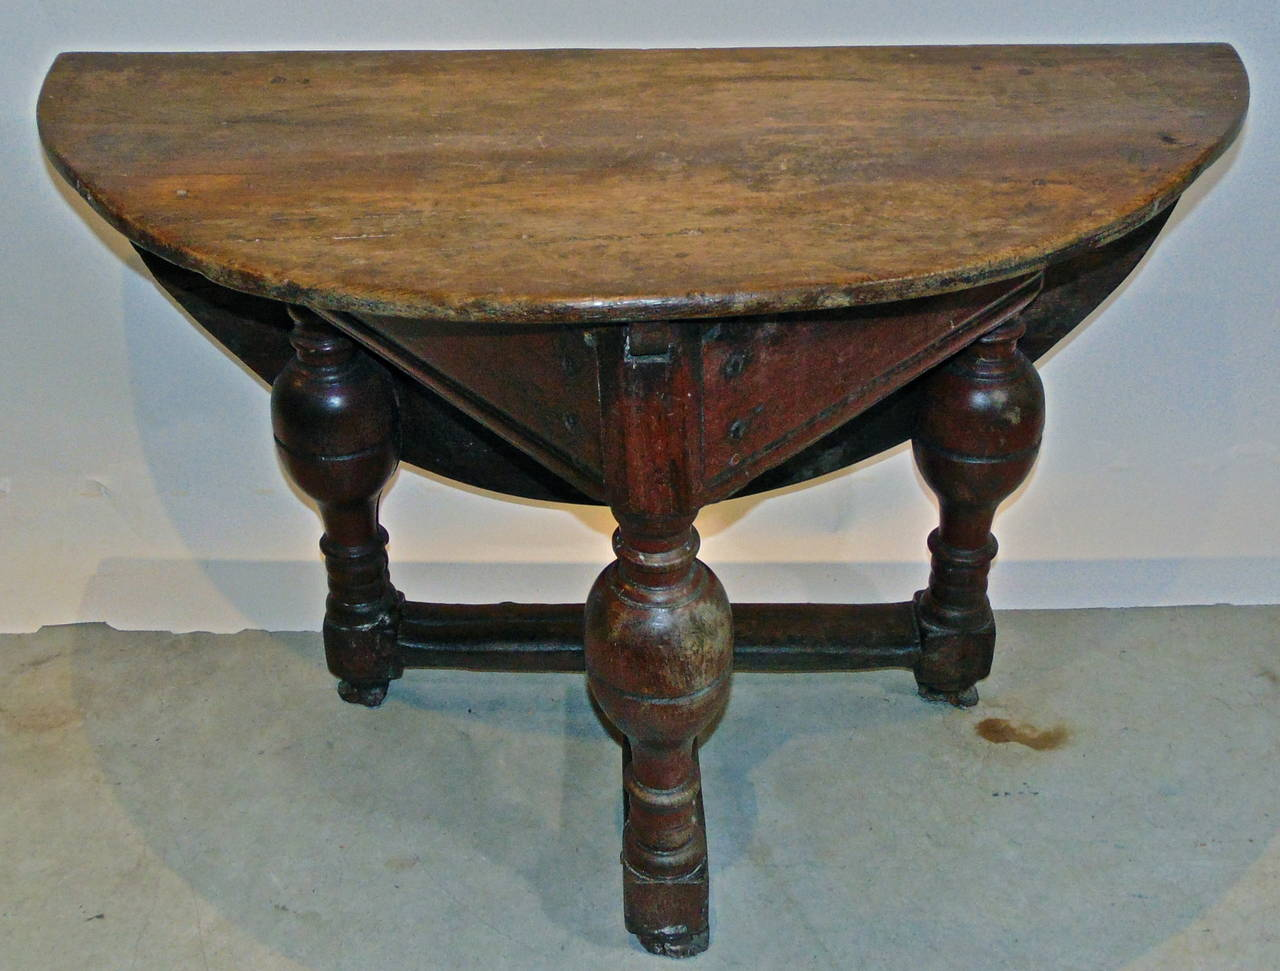 Period Flemish Drop Leaf Triangular Table. Baluster Legs And Stretchers  Open To Support An